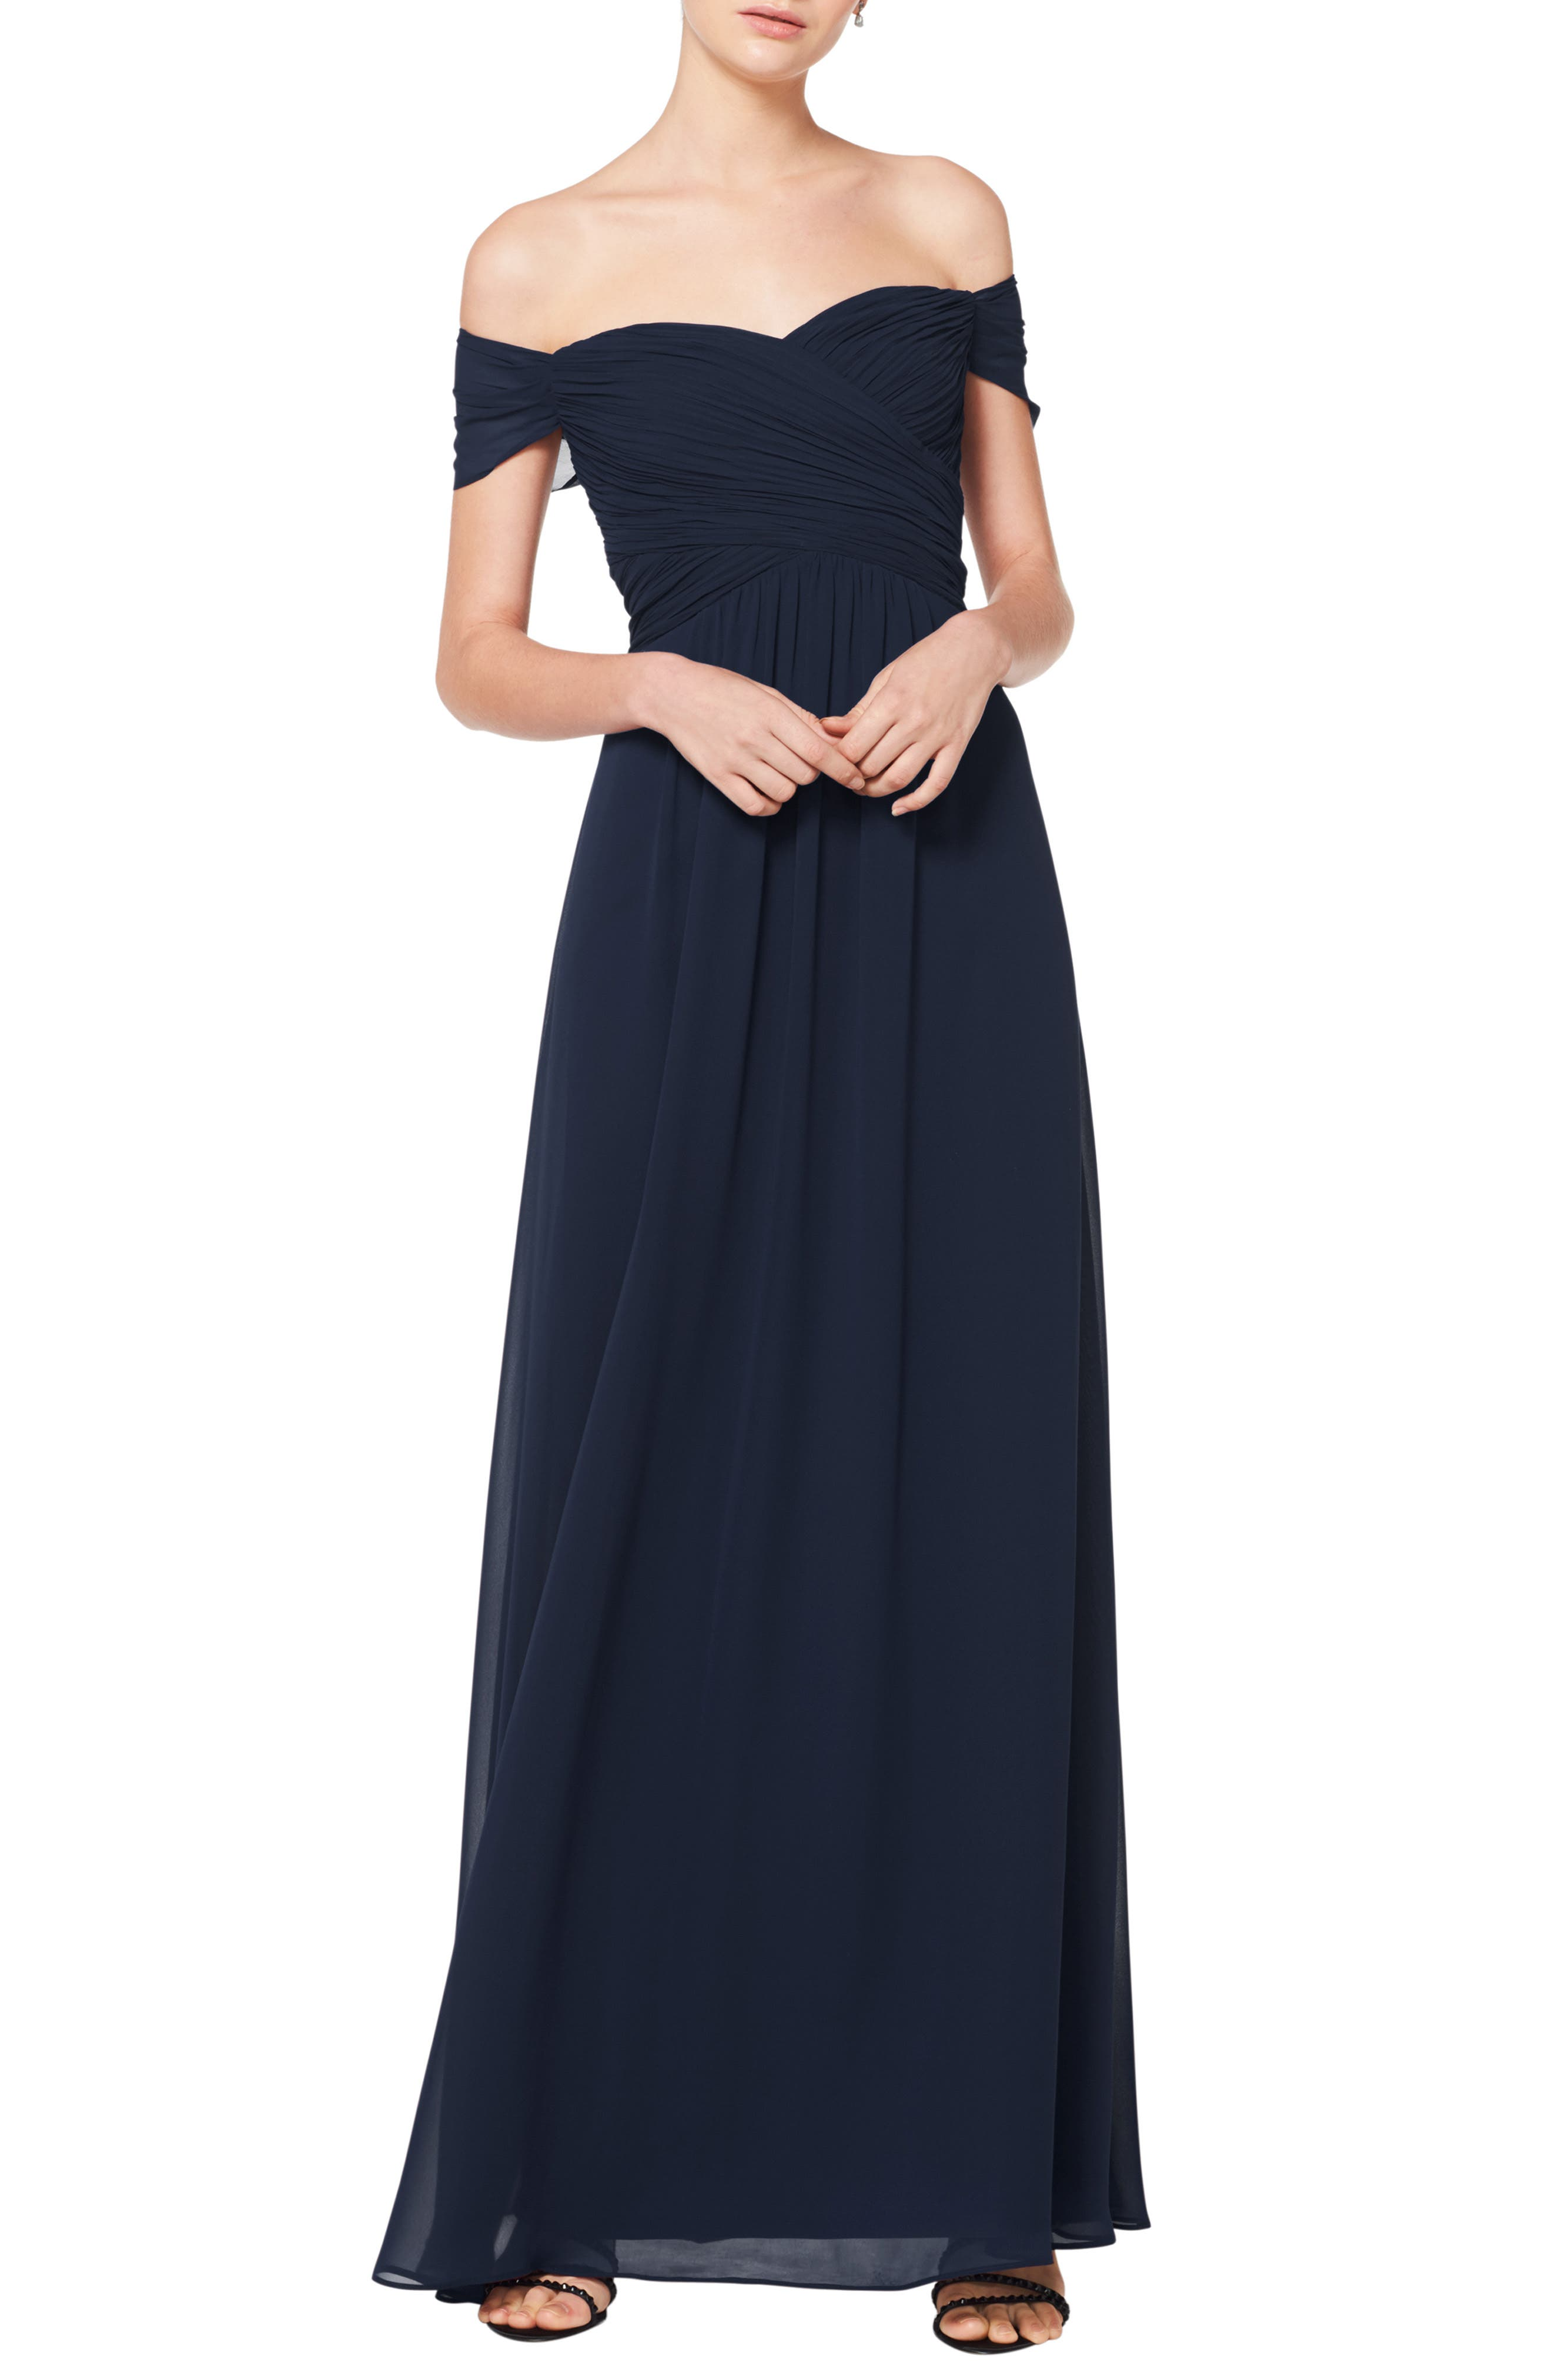 #LEVKOFF, Off the Shoulder Ruched Bodice Chiffon Evening Dress, Main thumbnail 1, color, NAVY